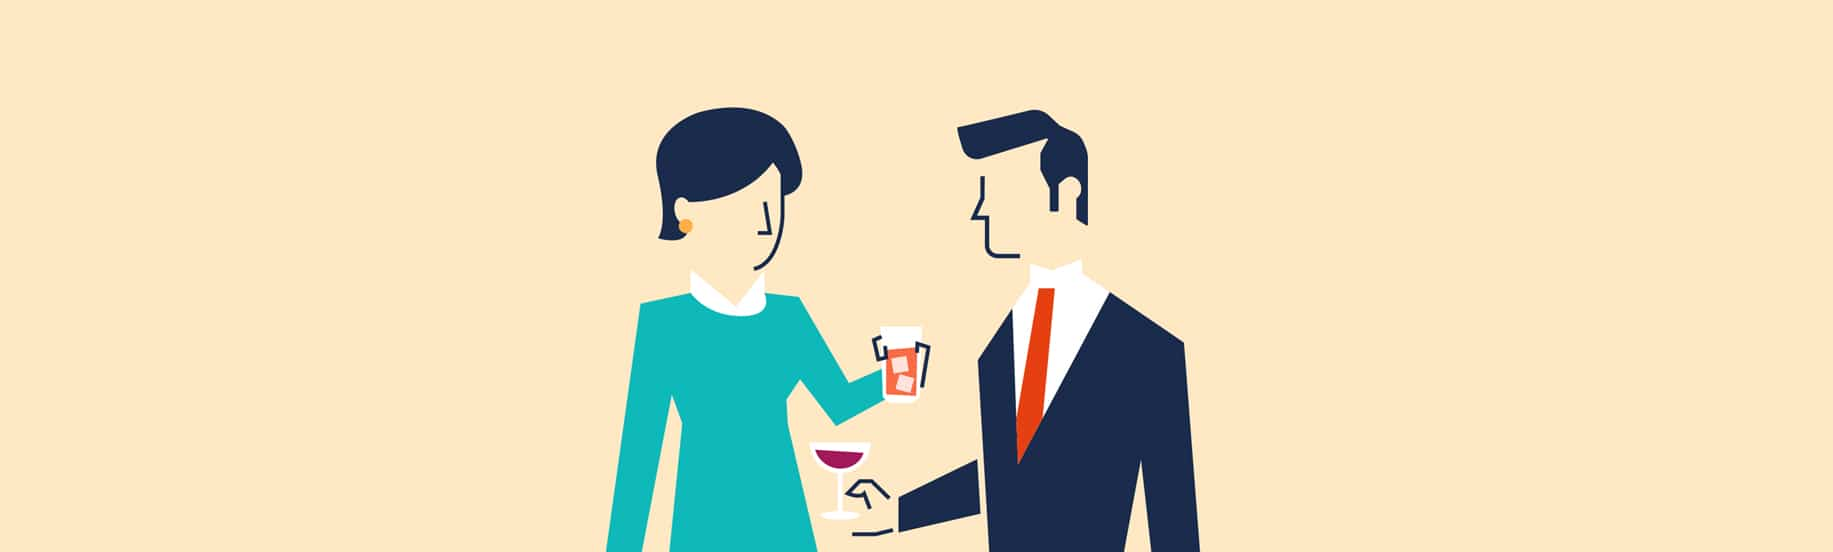 Illustration de deux personnes a un cocktail